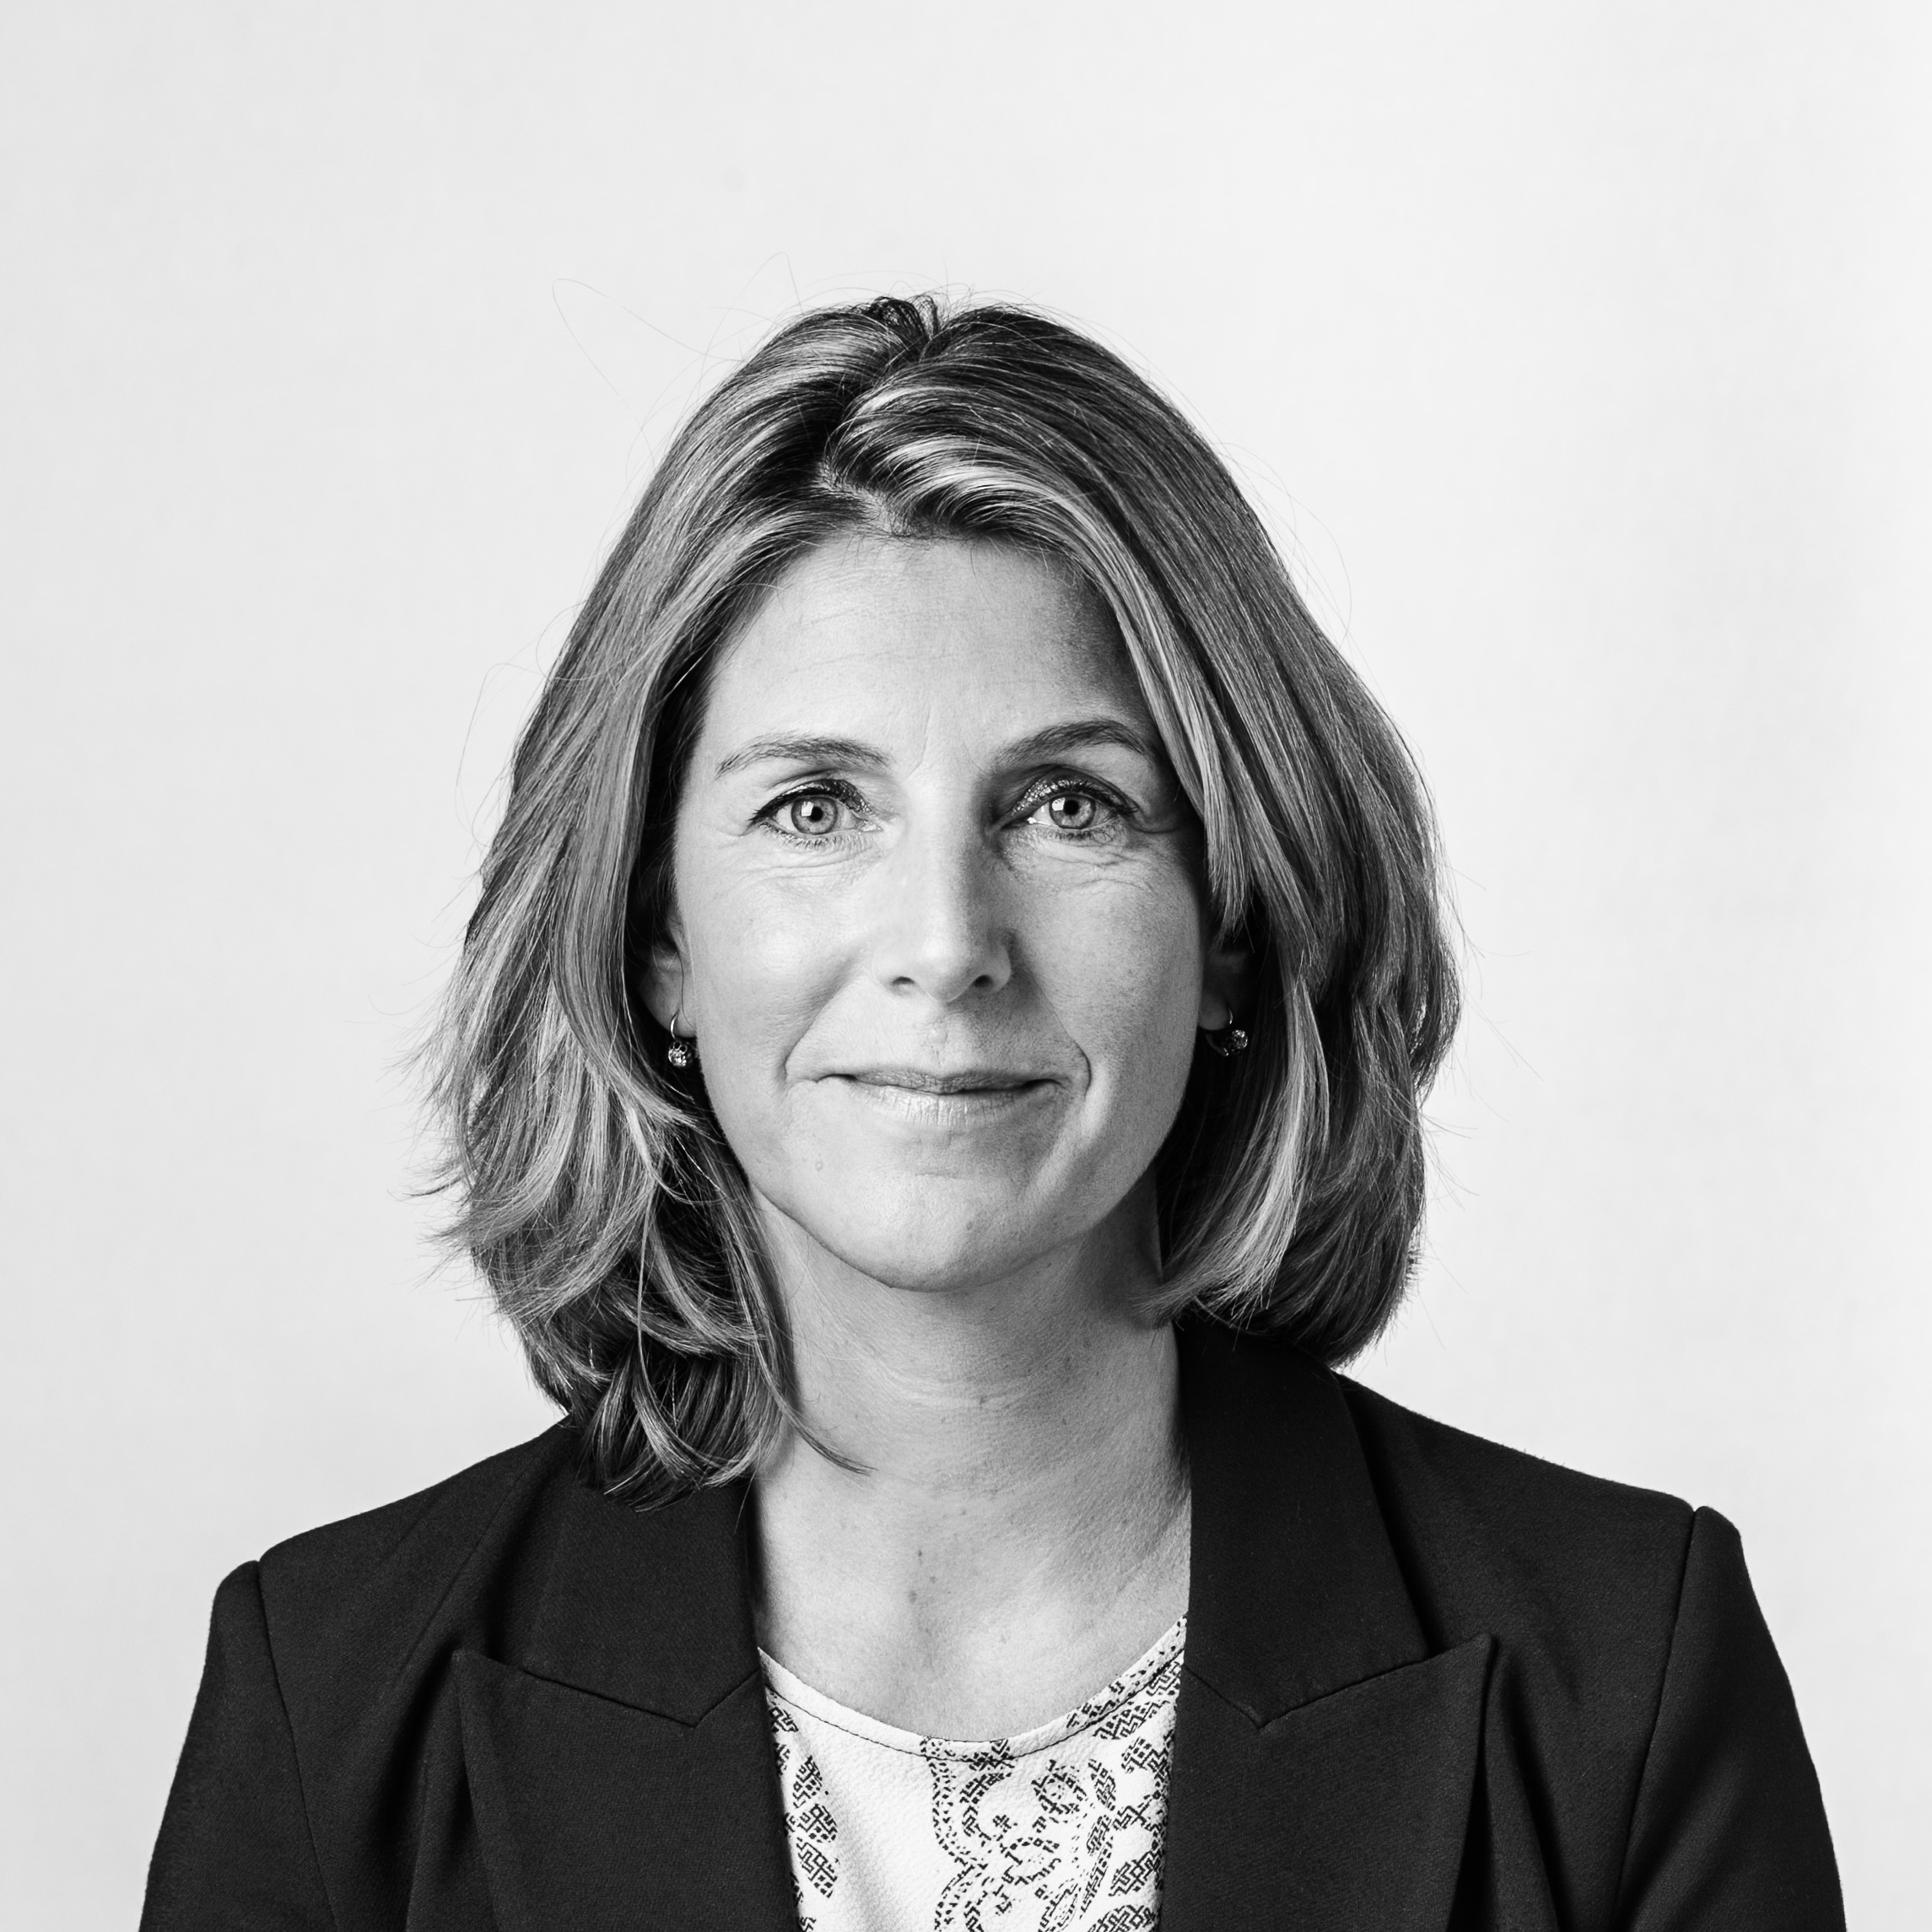 Triodos Investment Management benoemt Riëlla Hollander tot Director Food & Agriculture